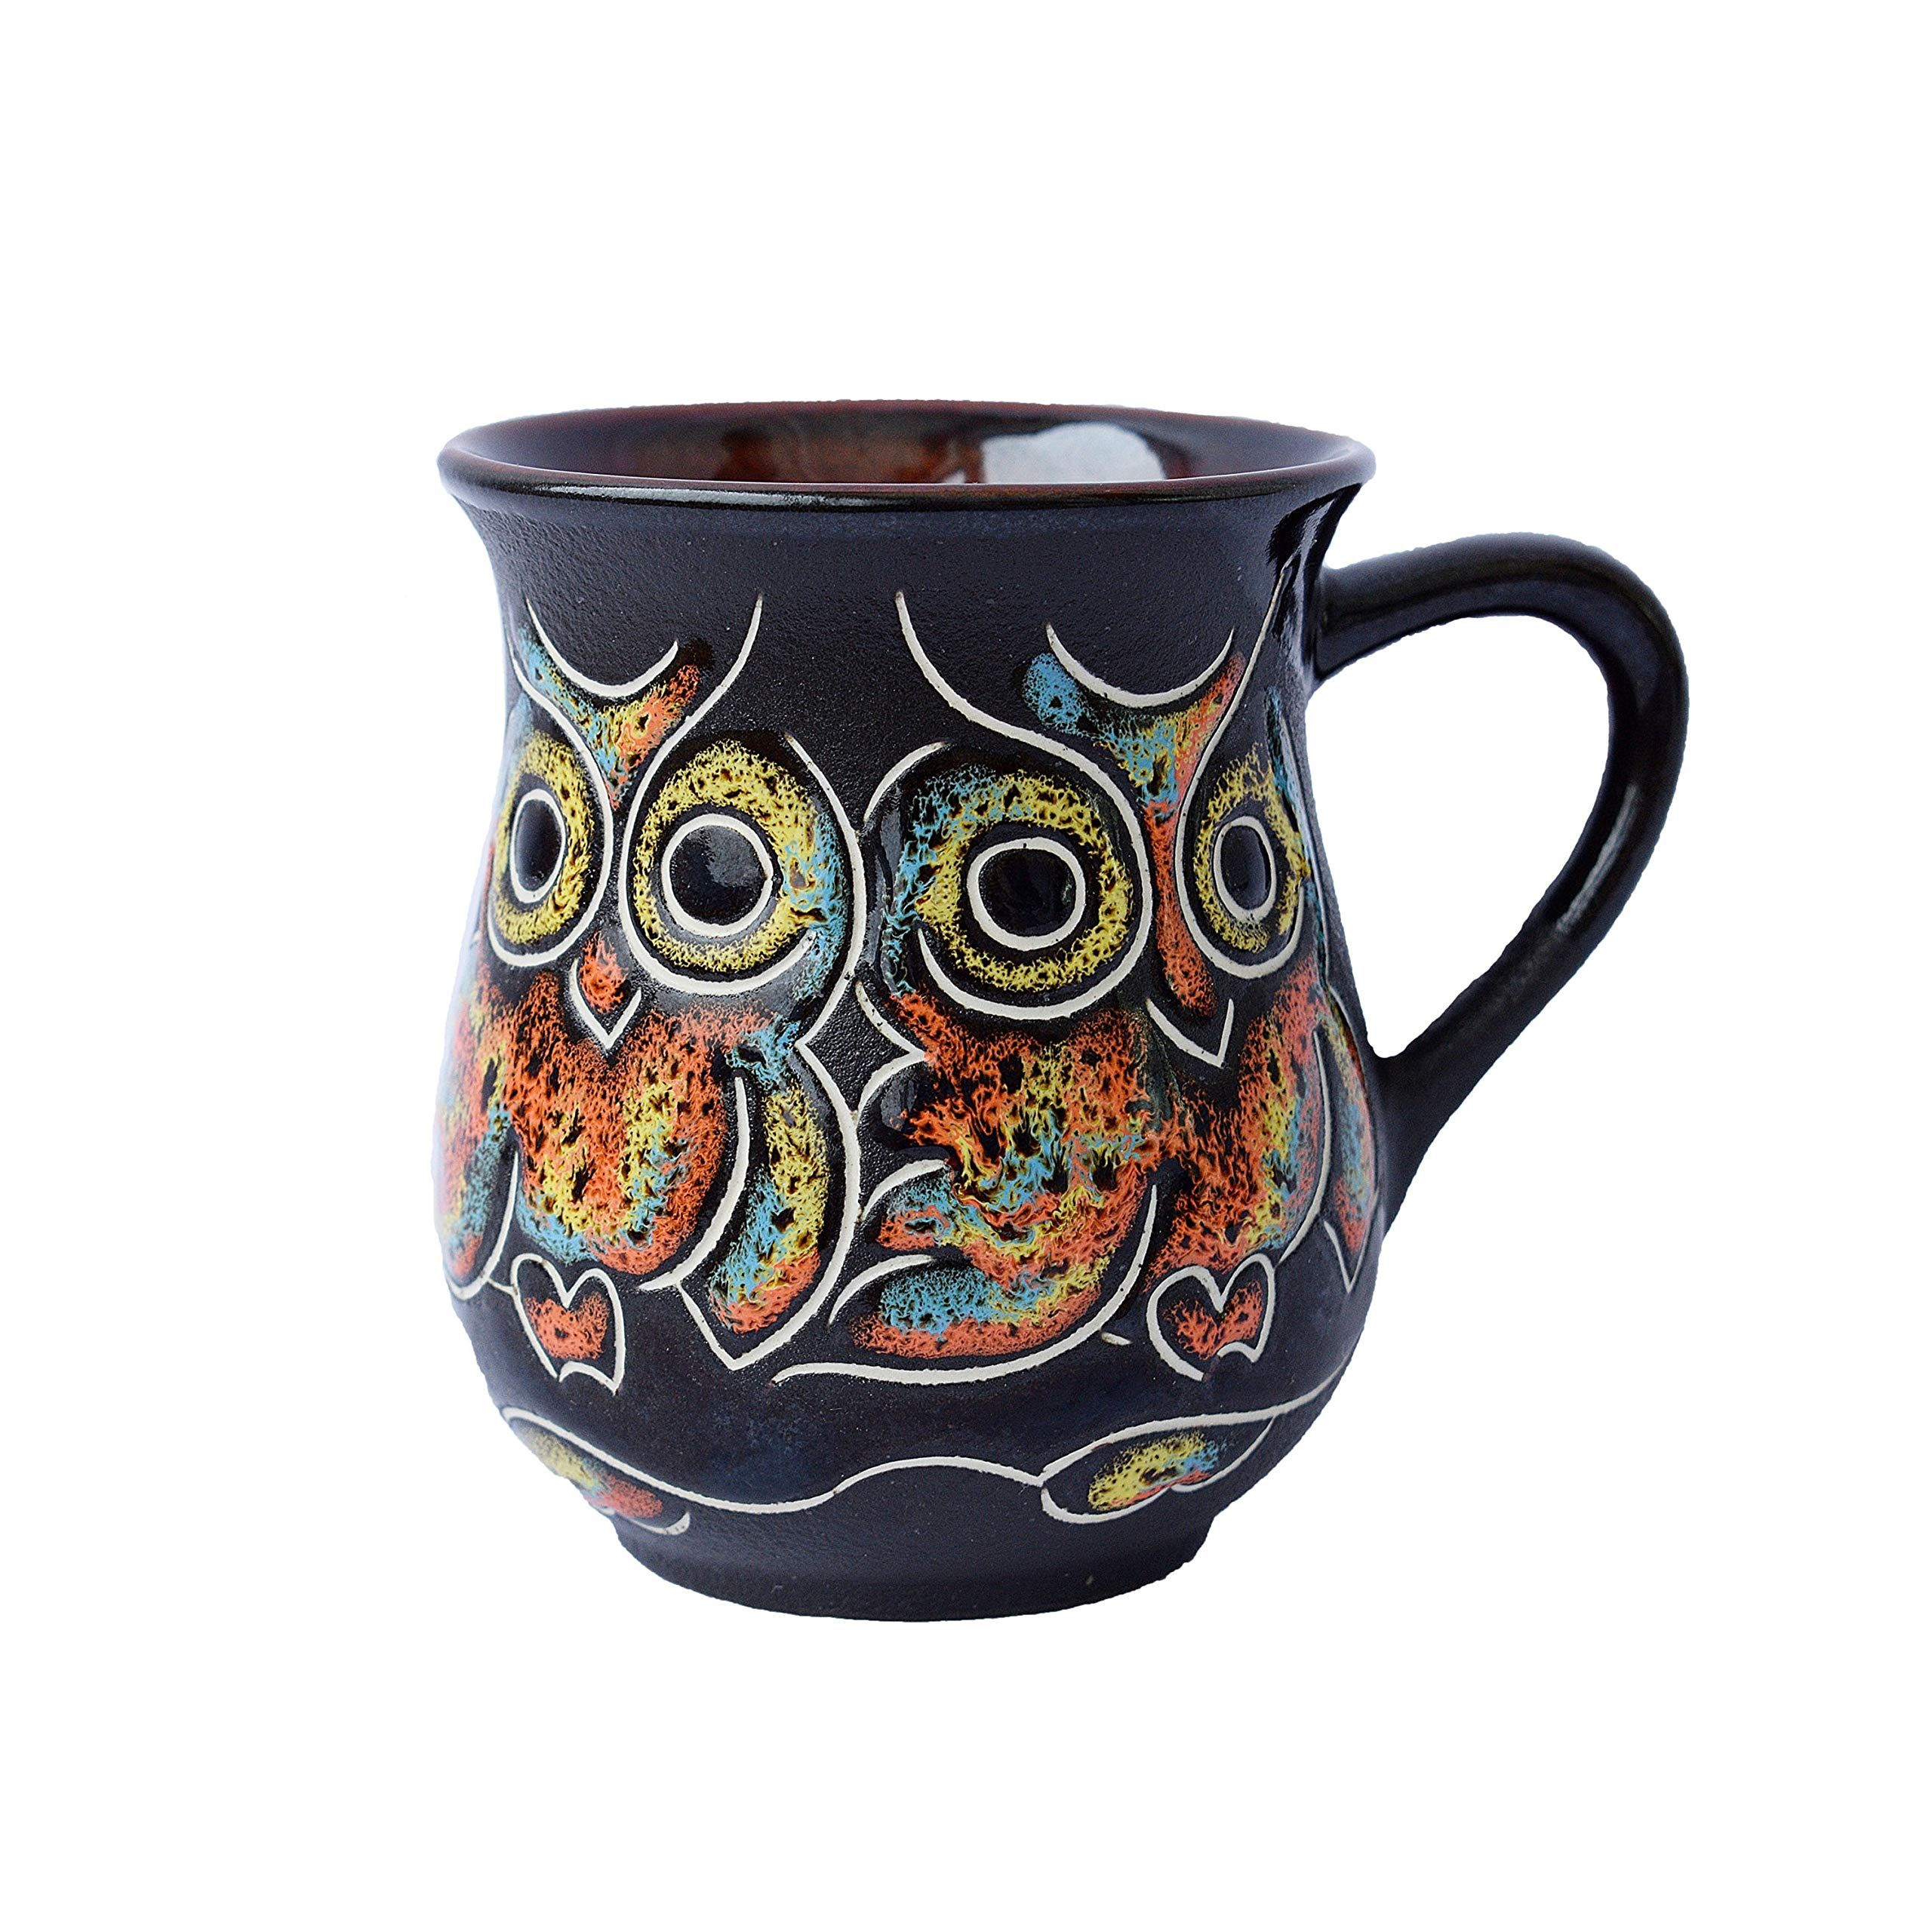 Pottery coffee mug Gift Idea «Owl» 10 fl oz fashion